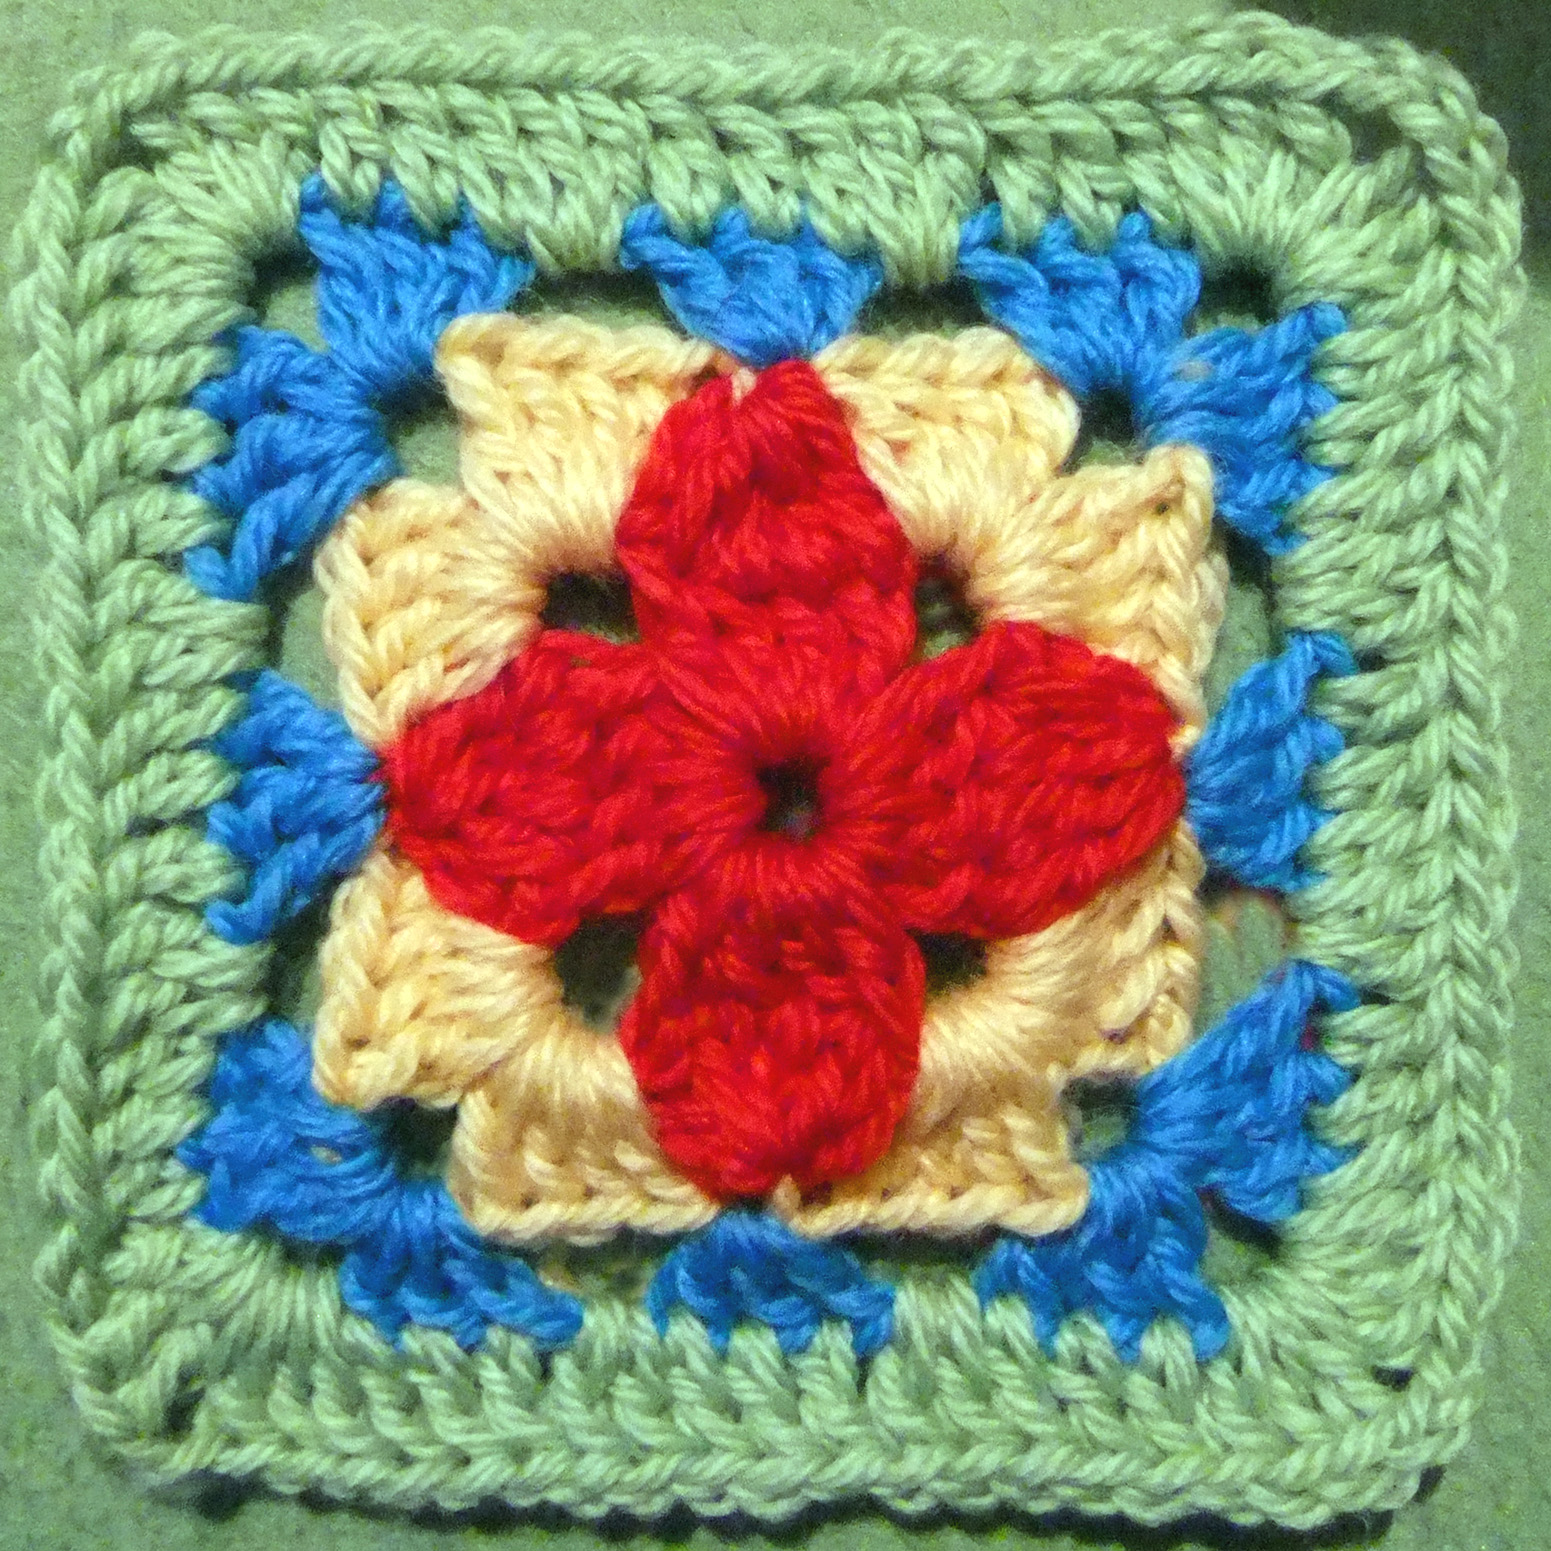 Crochet Afghan Patterns N Hook : AFGHAN CRO CROCHET HOOK PATTERN Crochet Patterns